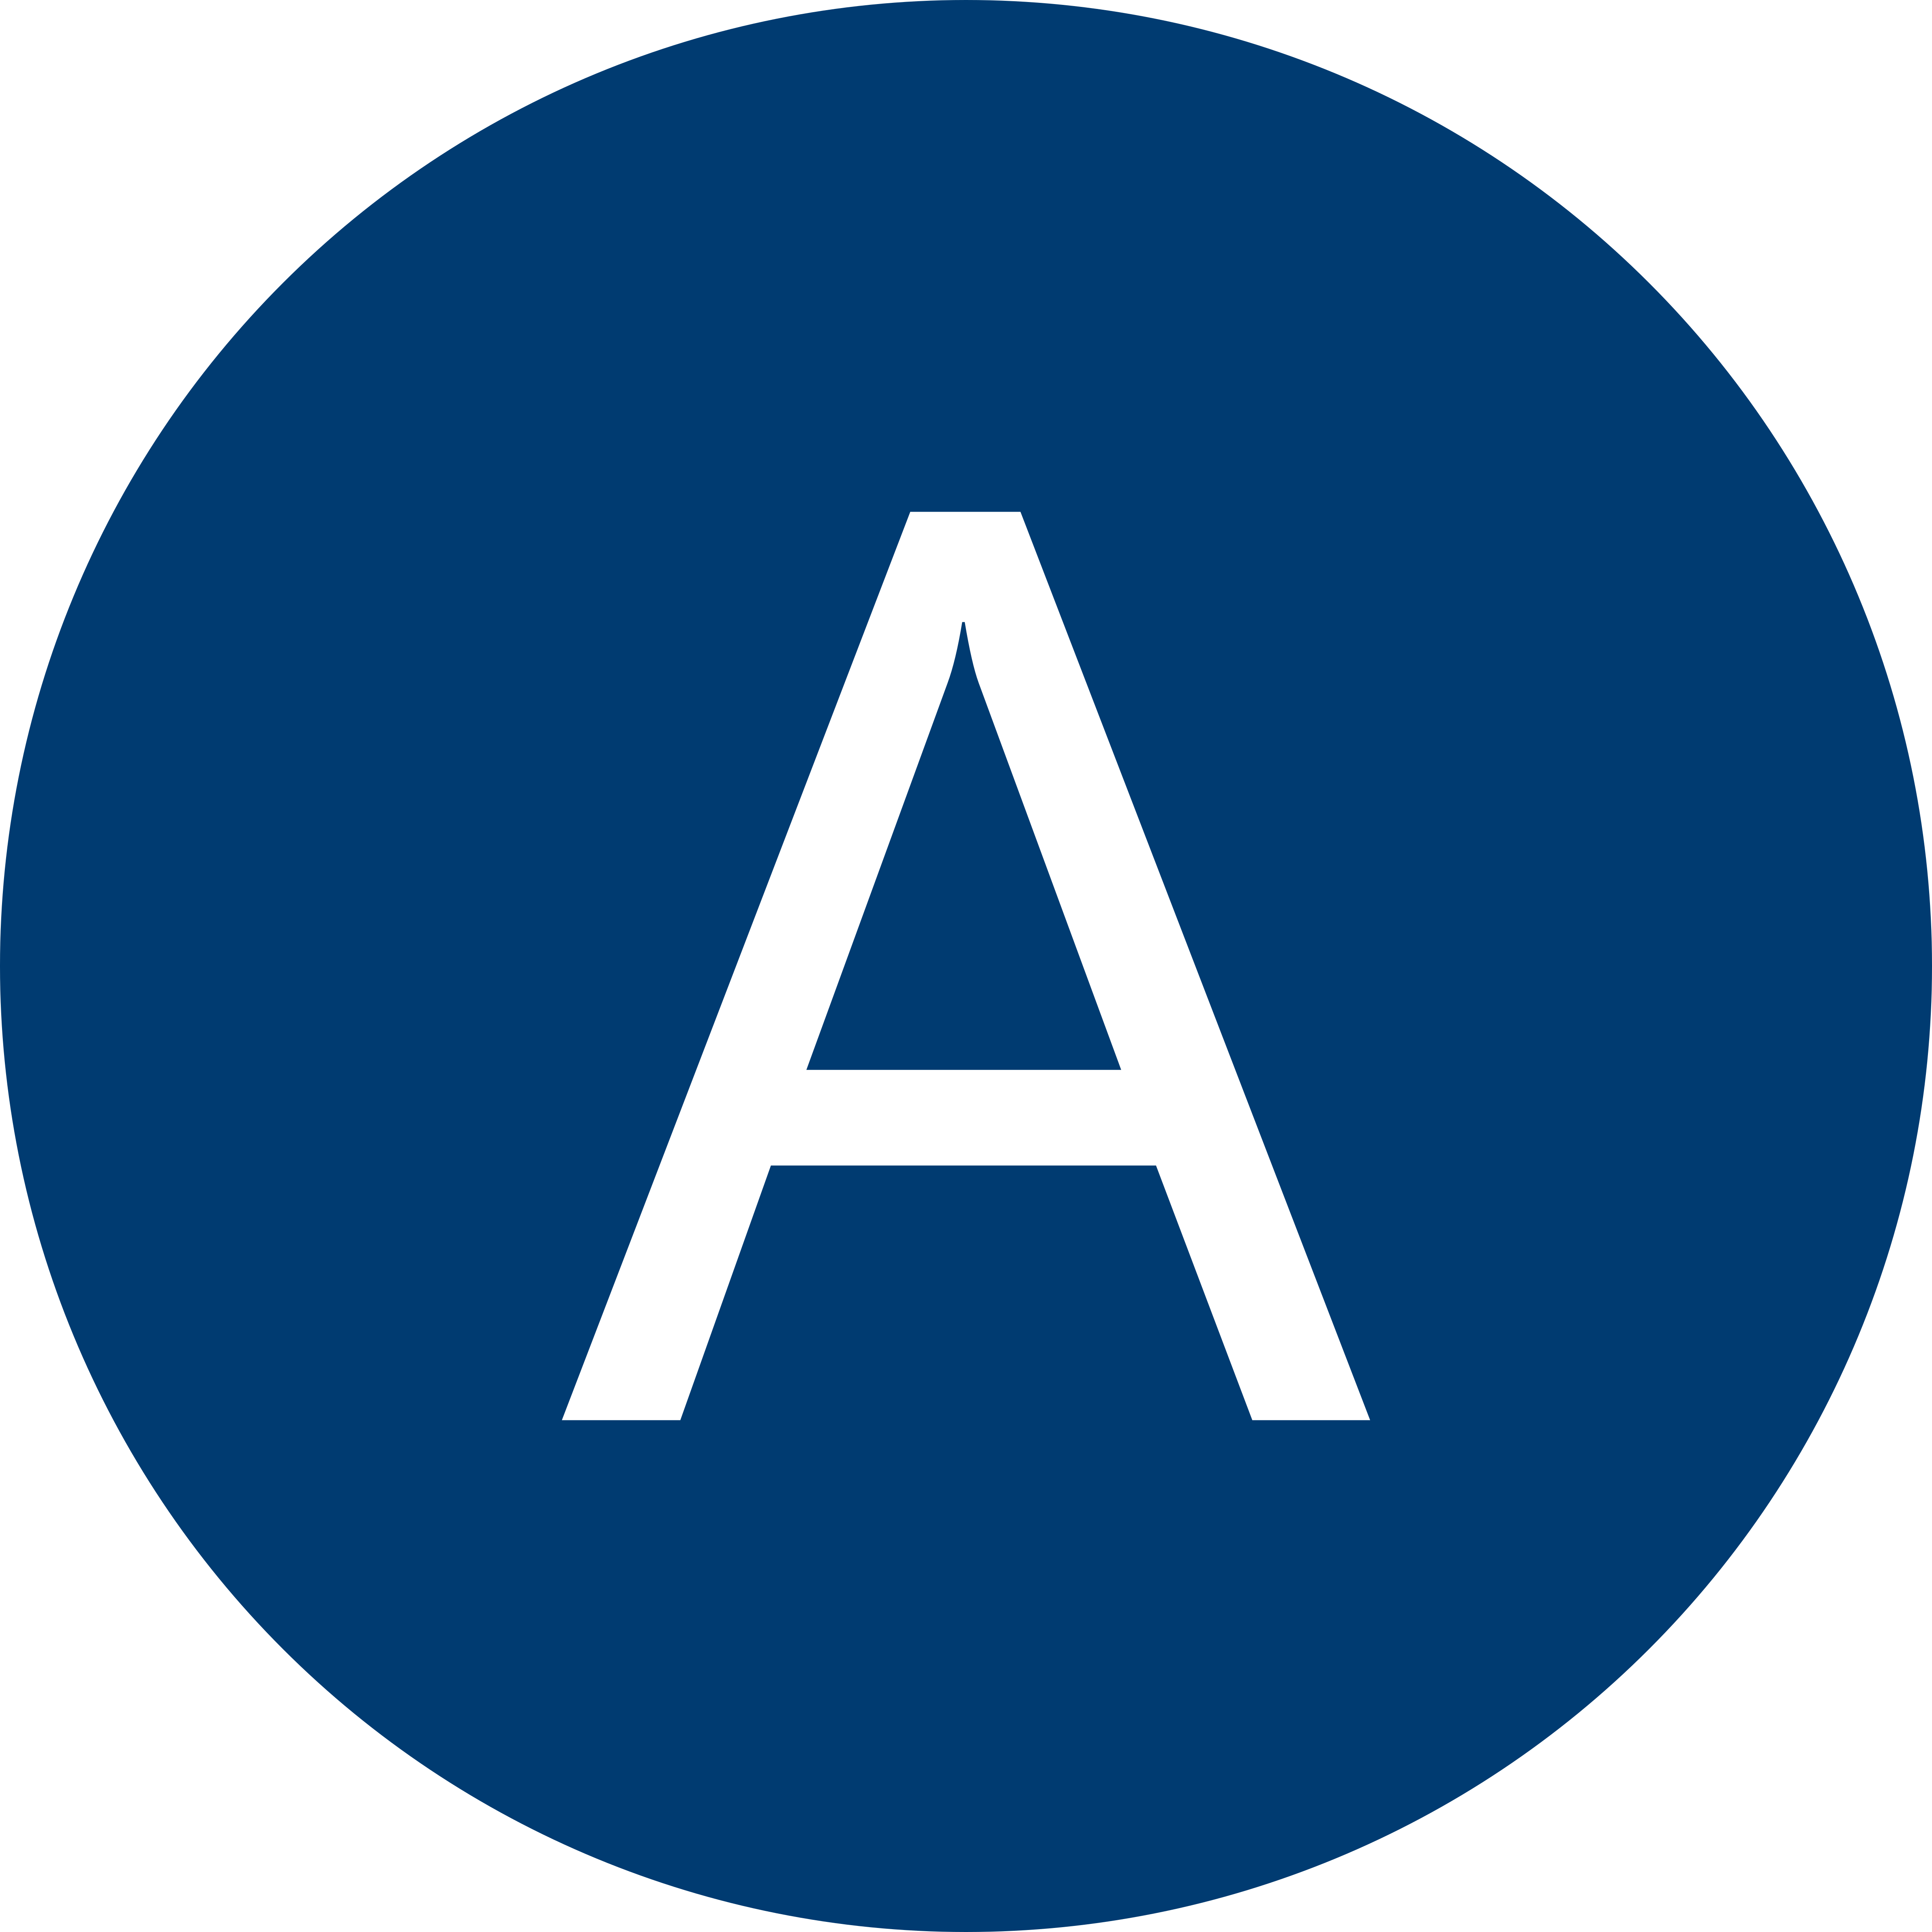 Blue circle with a white letter A inside